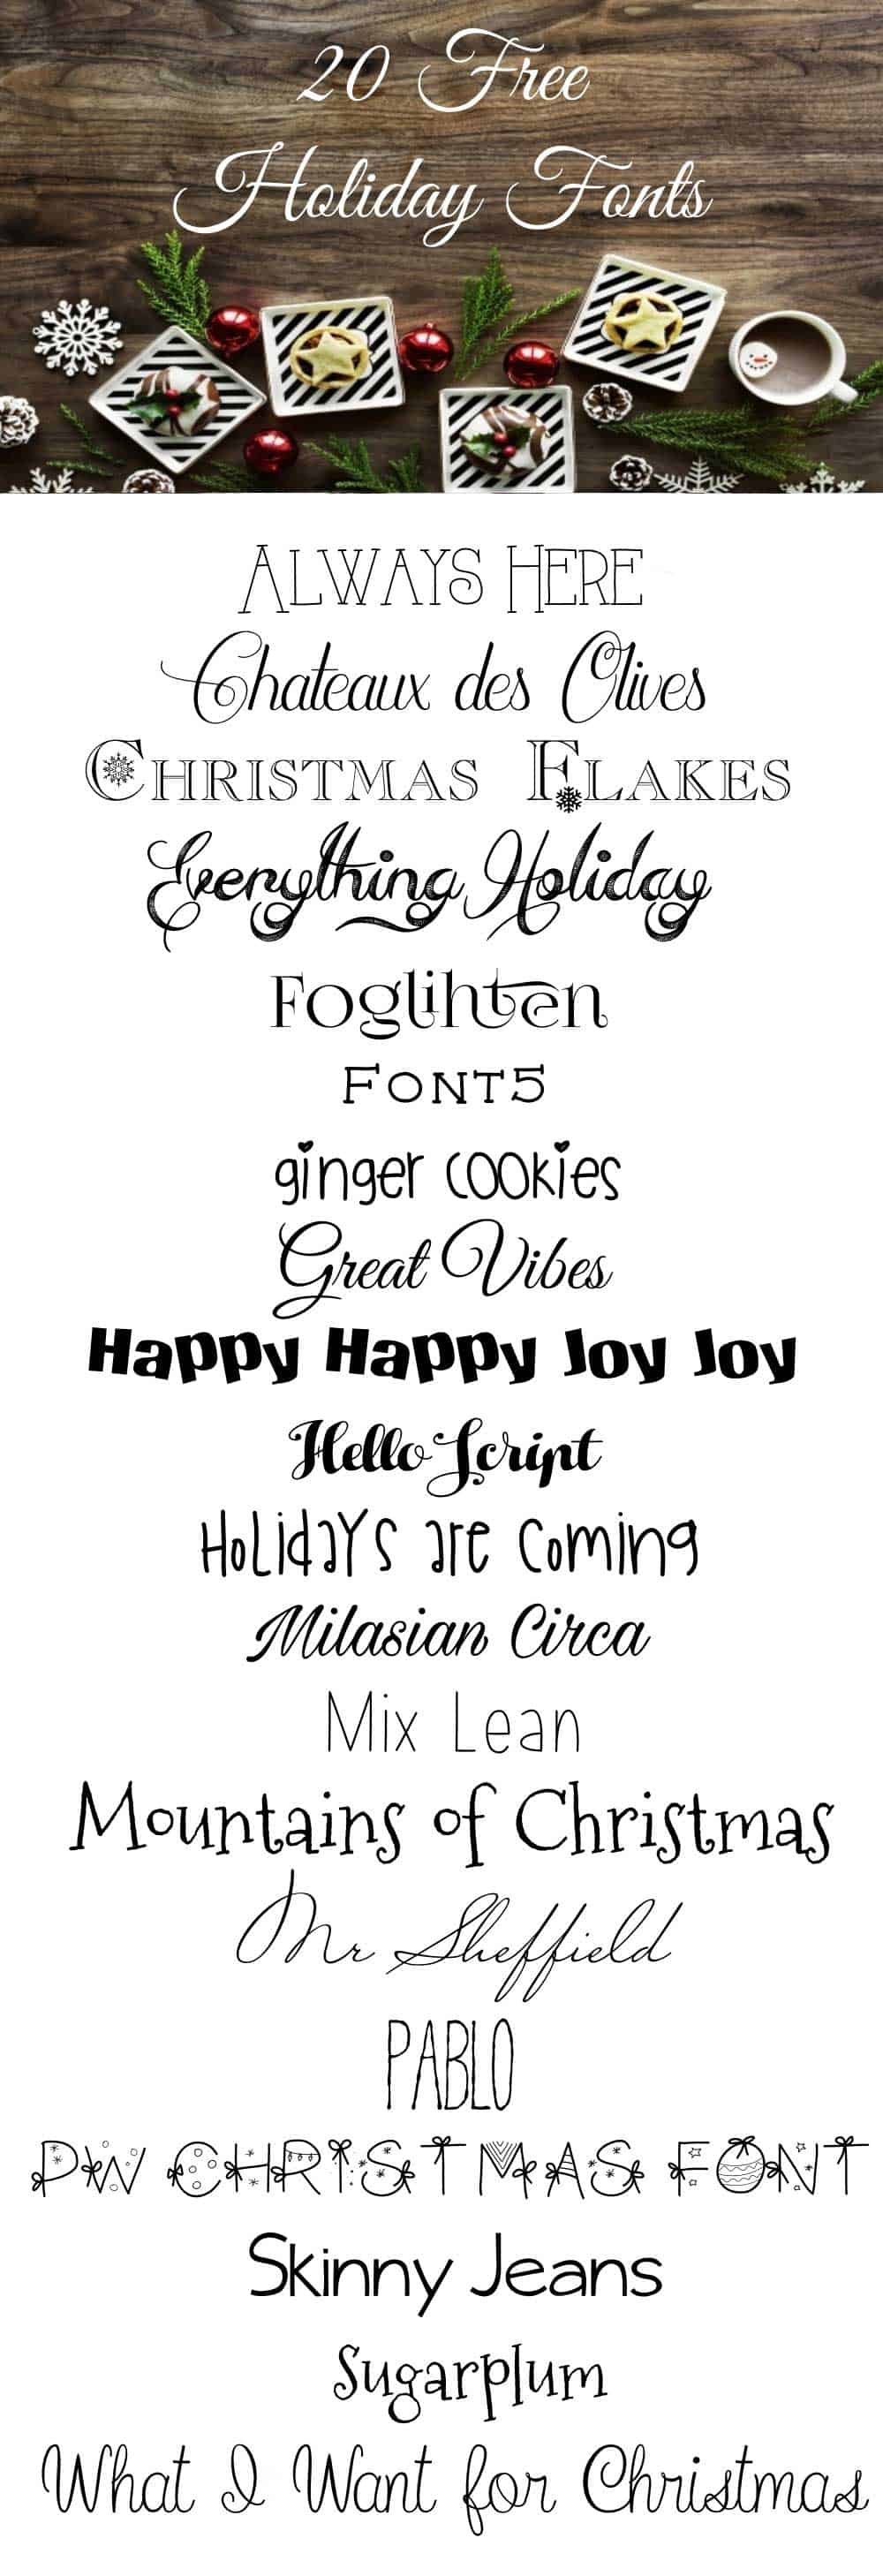 Free Christmas Fonts.My Favorite Free Christmas Fonts Perfect For Printables